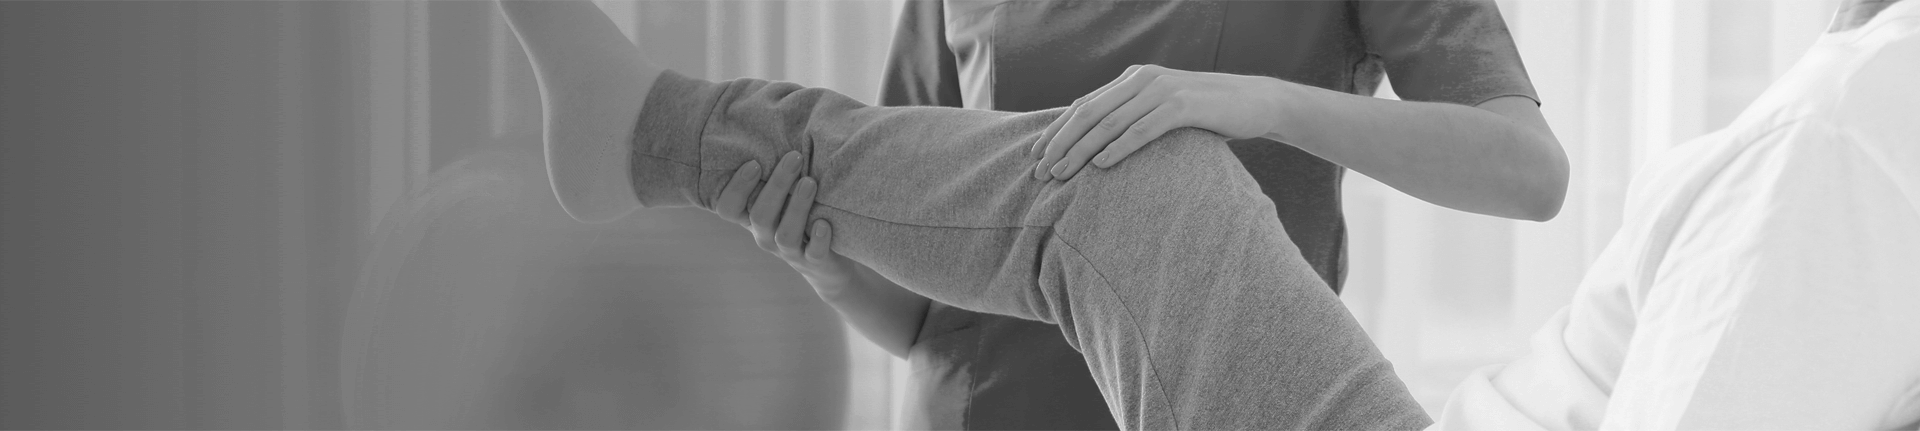 Pain Management & Physical Therapy